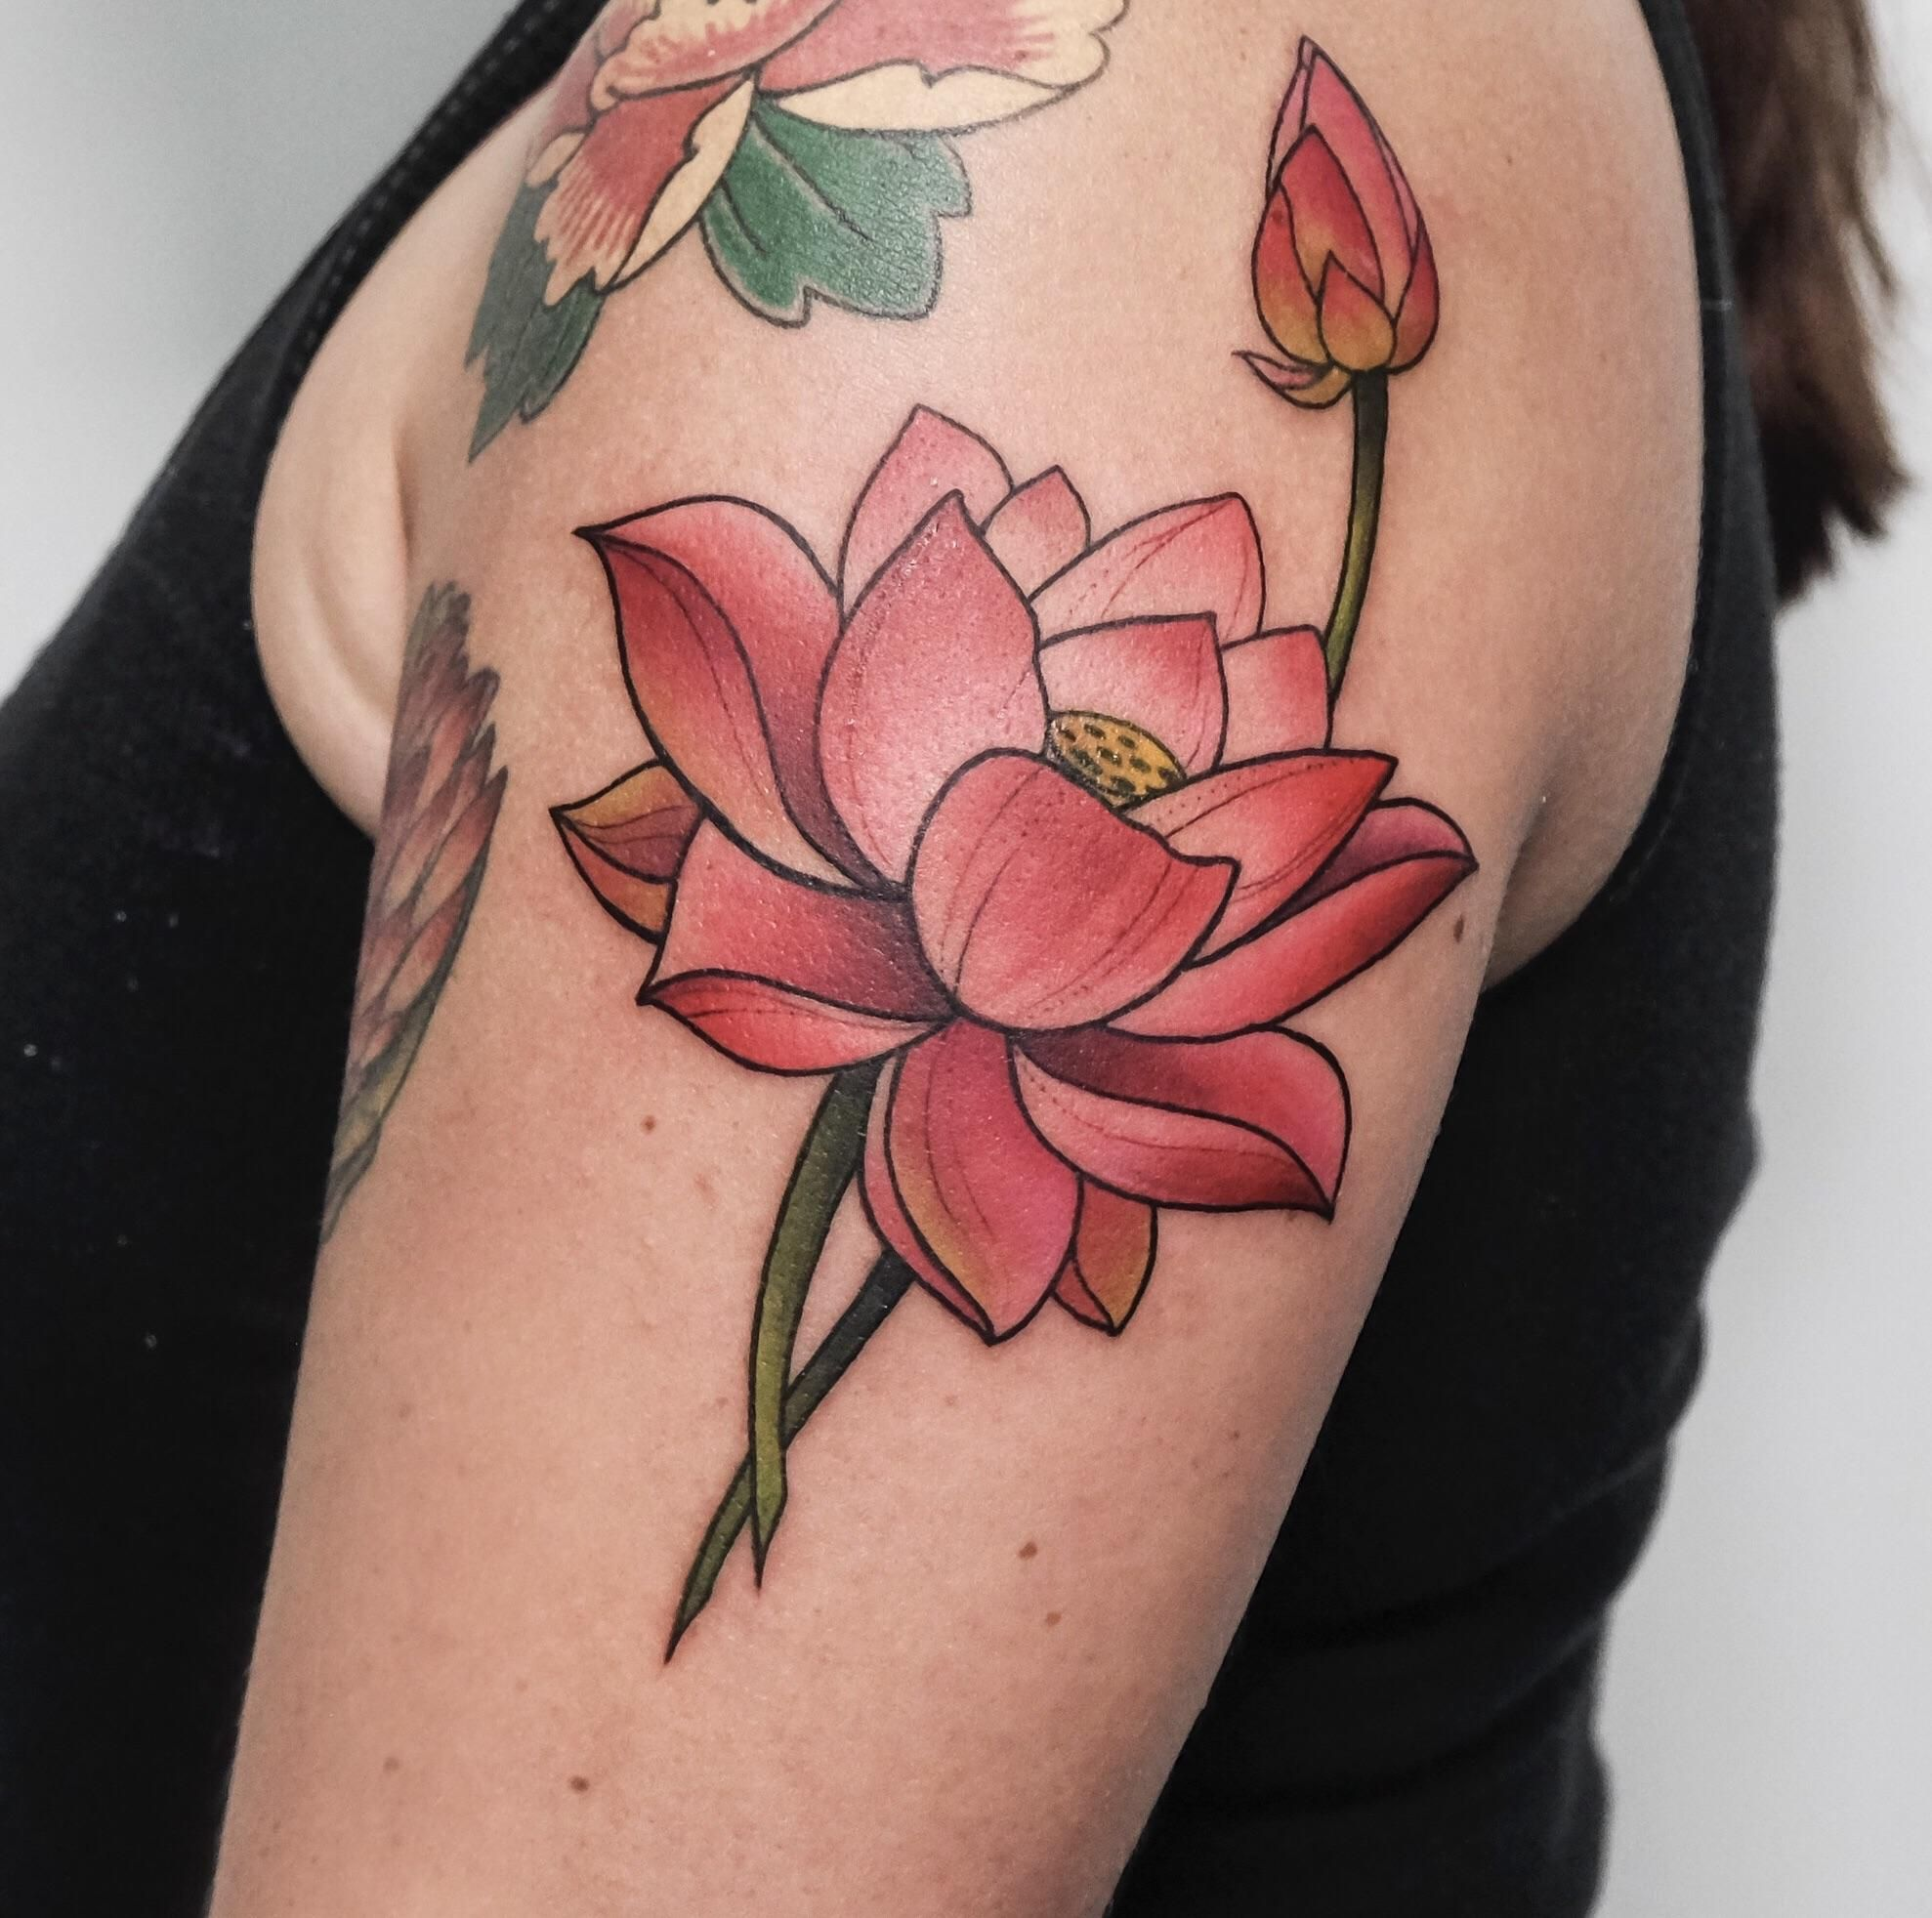 Lotus Flower By Tata At Recycle Tattoo In Ho Chi Minh City Vietnam In 2020 Vietnam Tattoo Tattoos R Tattoo